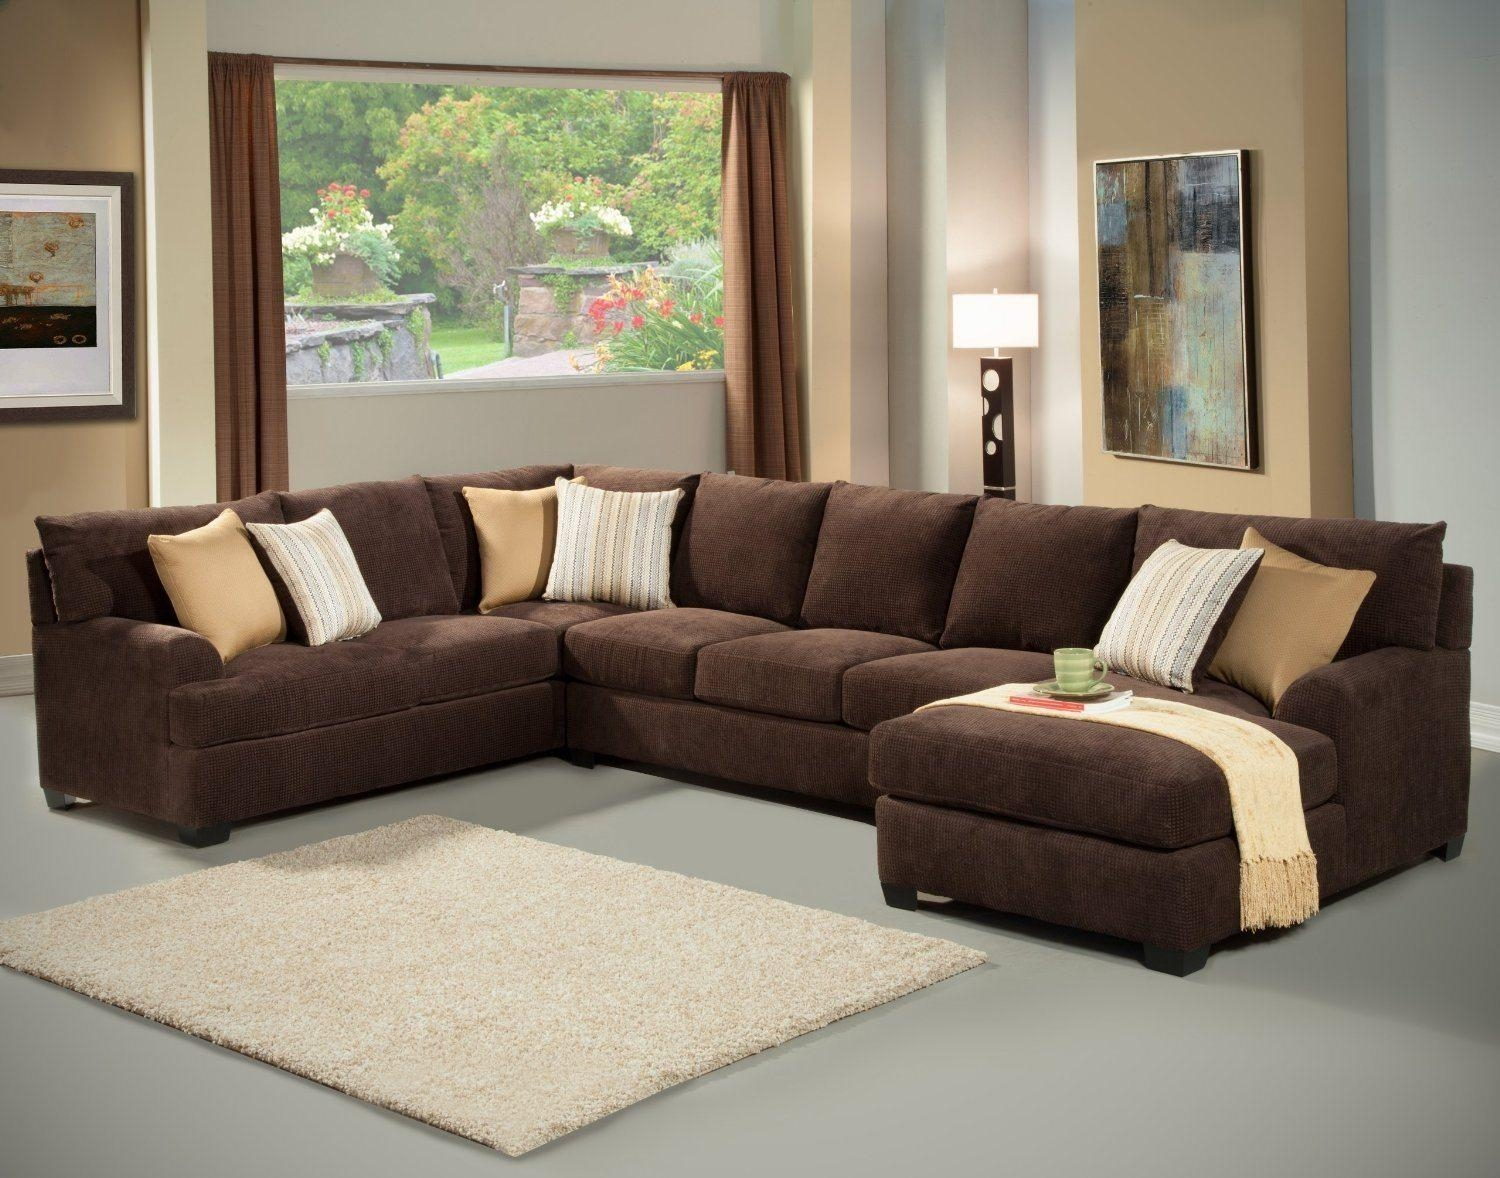 Queen Sofa Bed Sectional regarding Queen Sofa Sleeper Sectional Microfiber